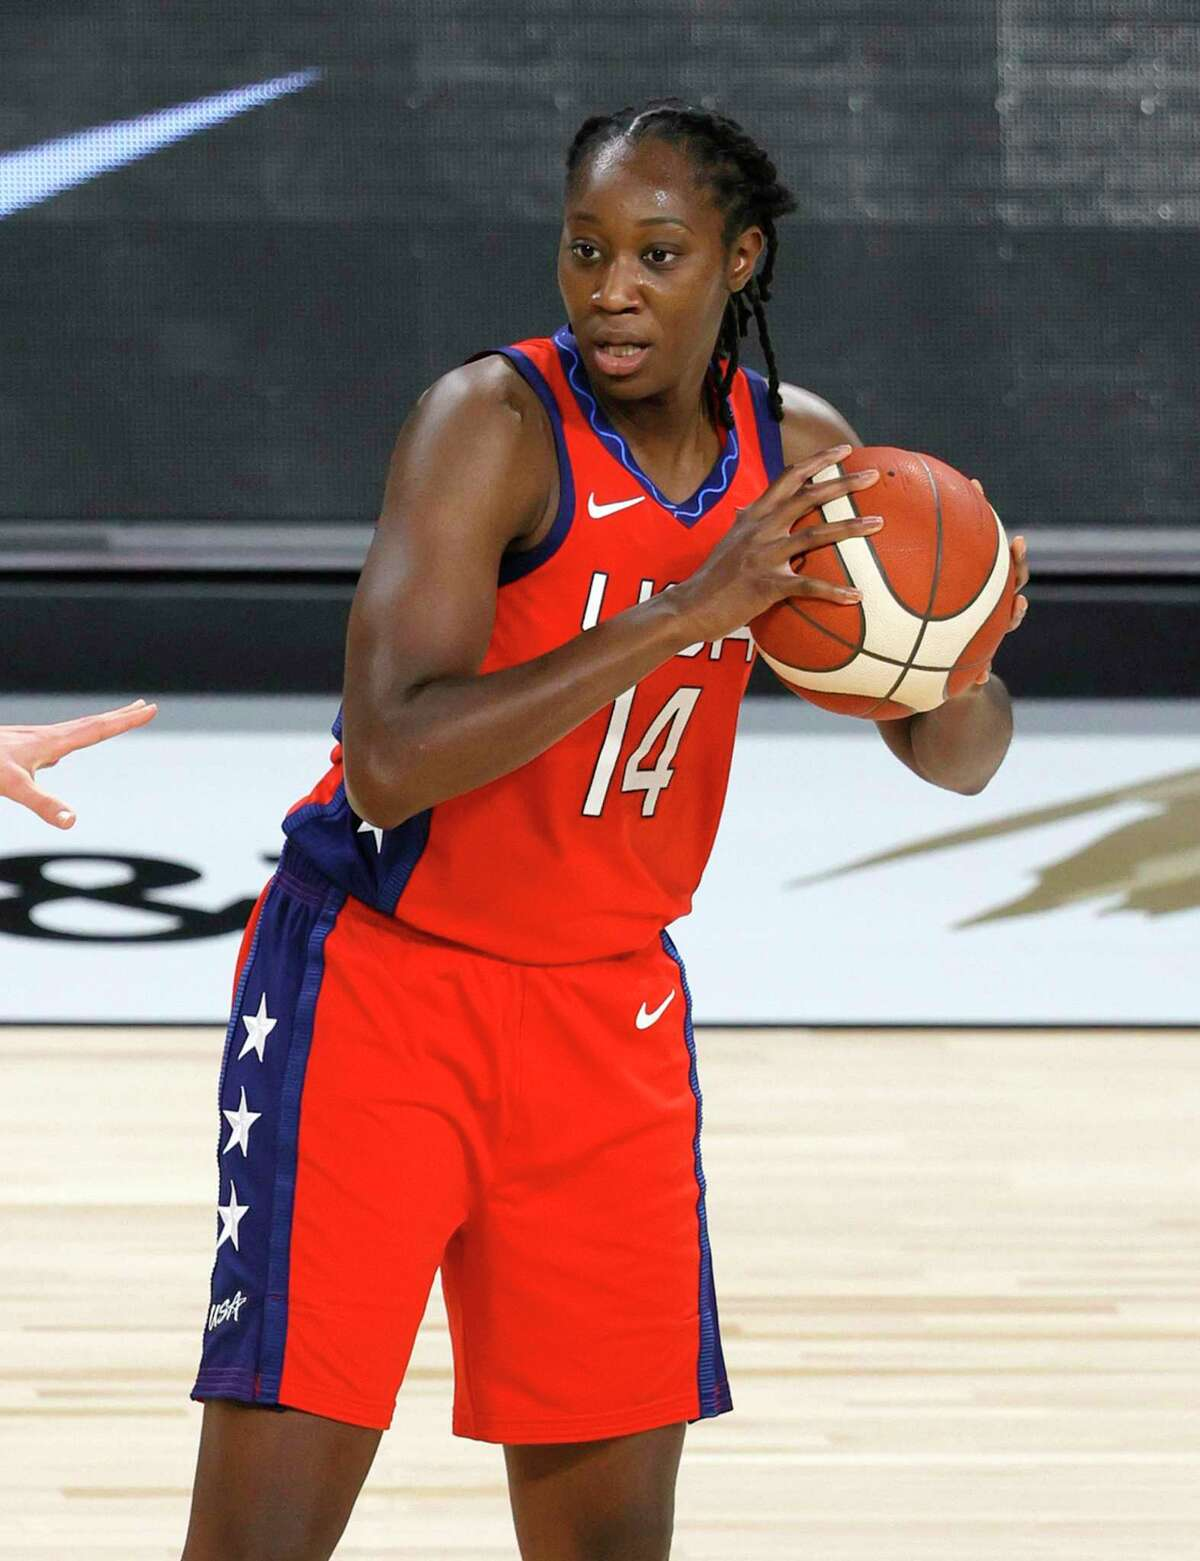 Tina Charles: An eight-time WNBA All-Star and two-time NCAA Champion, Charles owns three World Cup Gold medals while playing for Team USA.